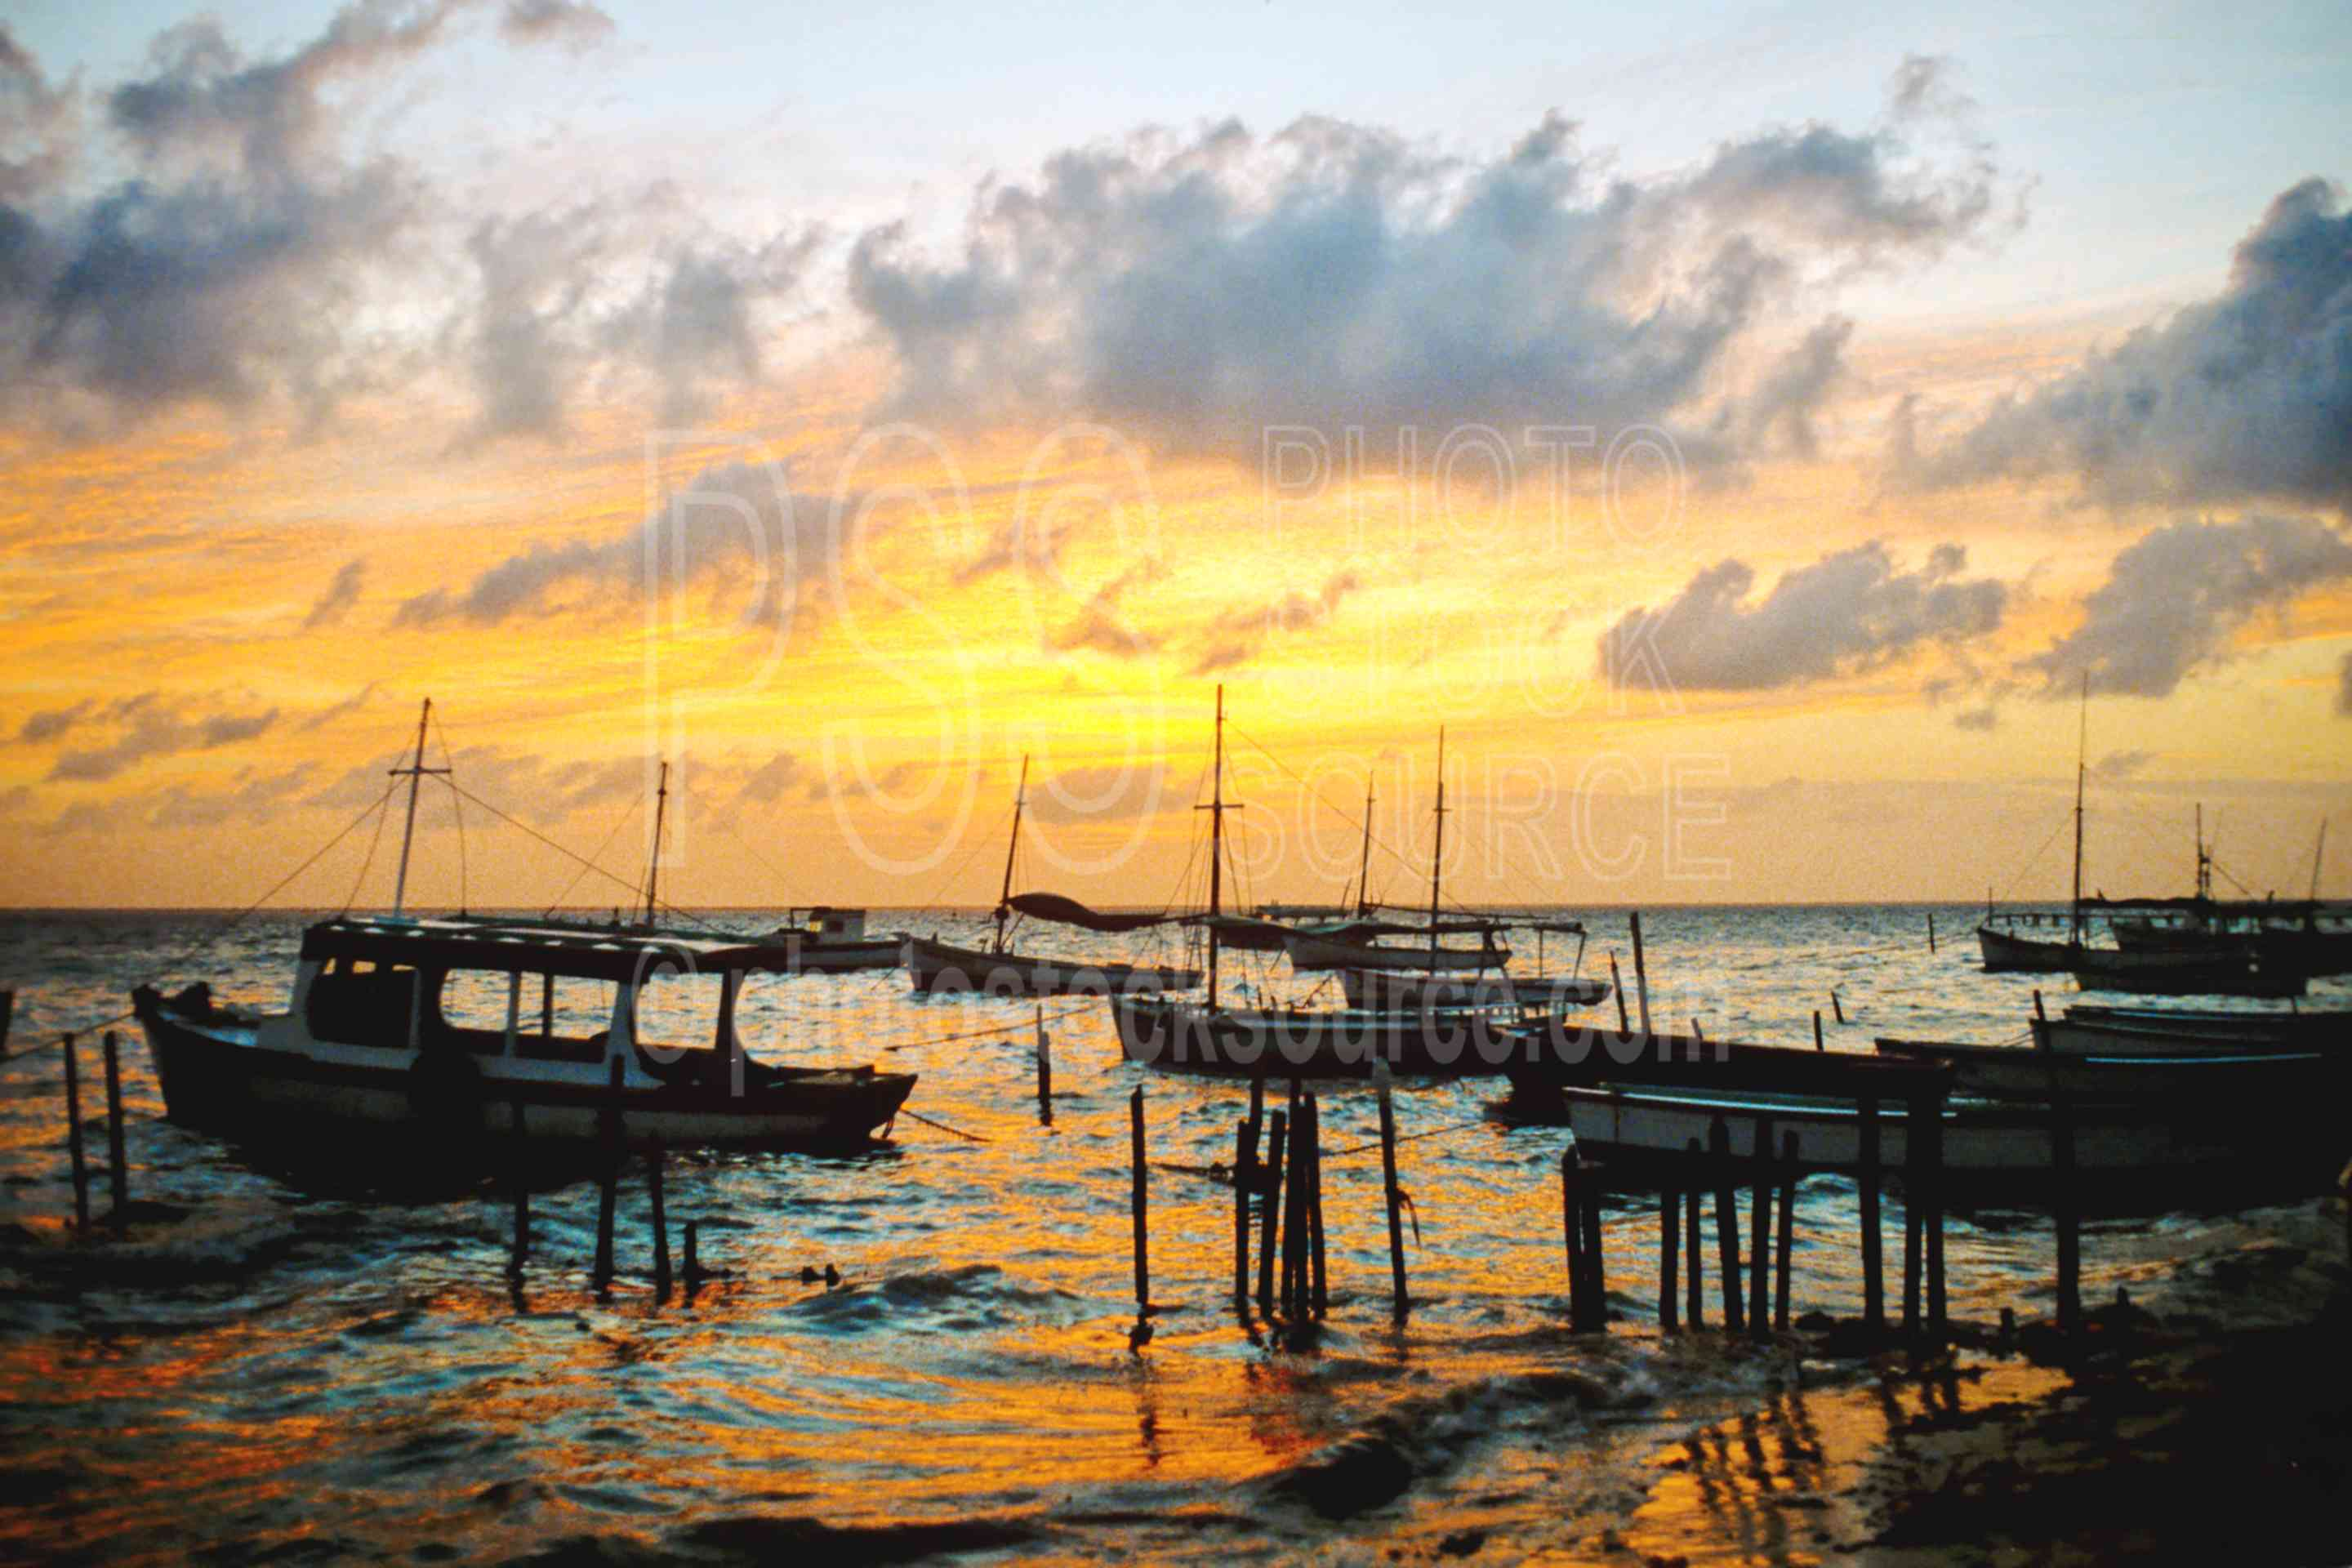 Boats at Sunset,harbor,sunset,boats